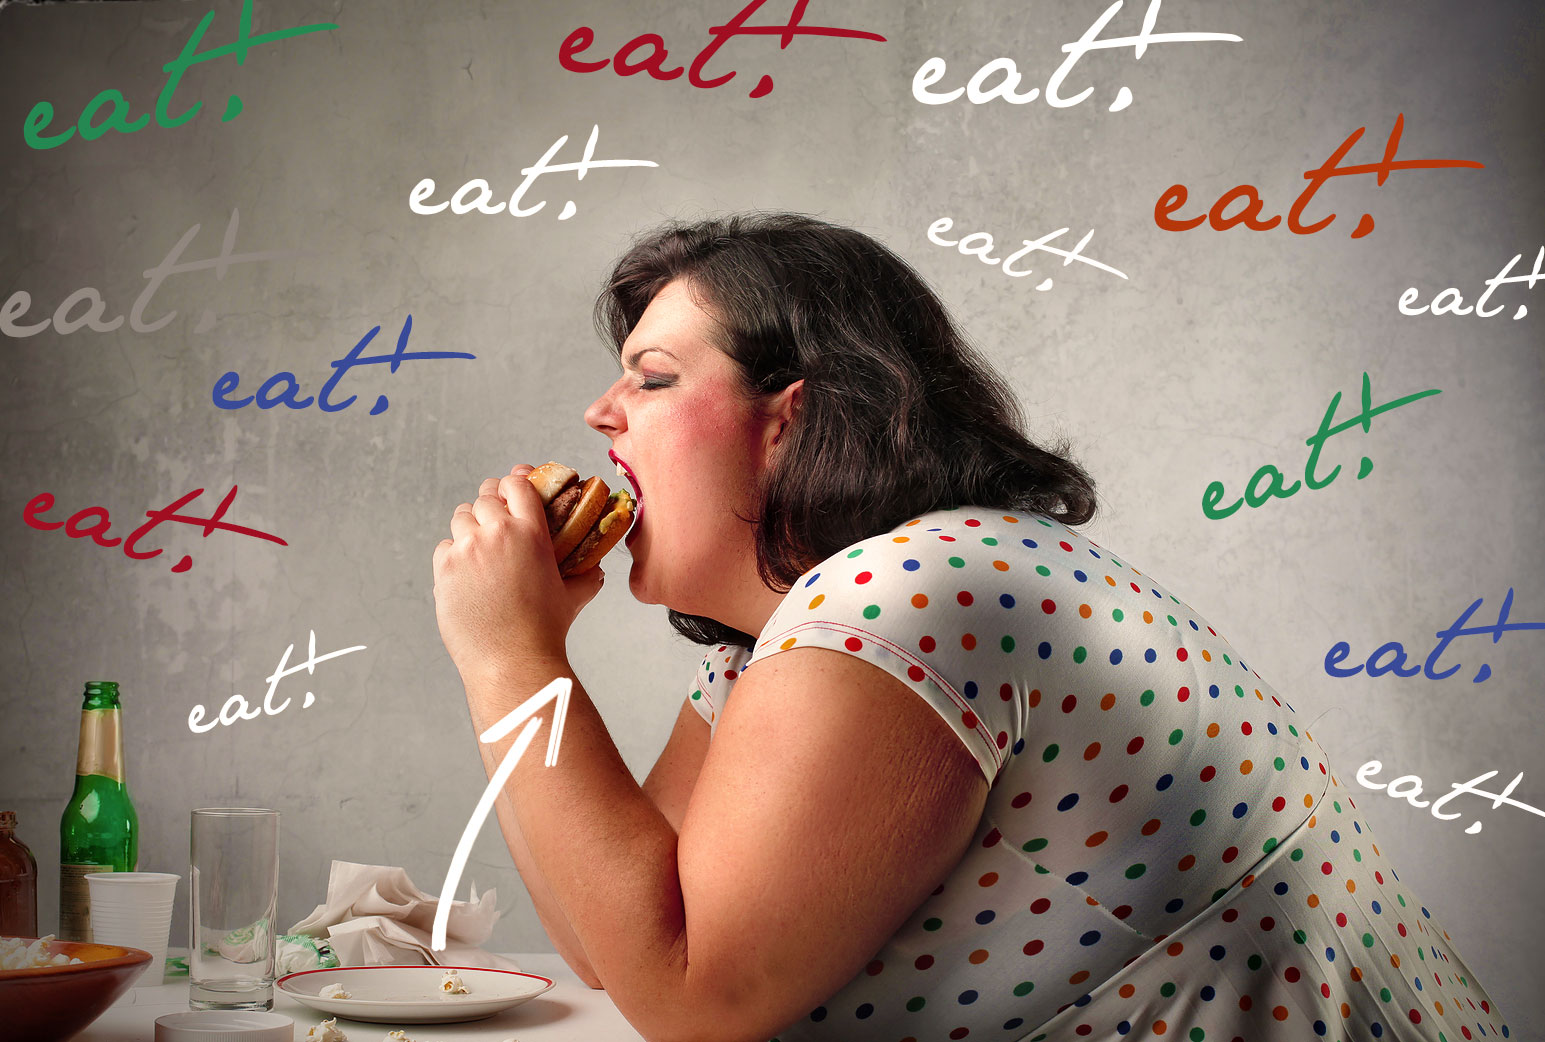 IS YOUR FOOD PLATE COLOR MAKING YOU FAT?